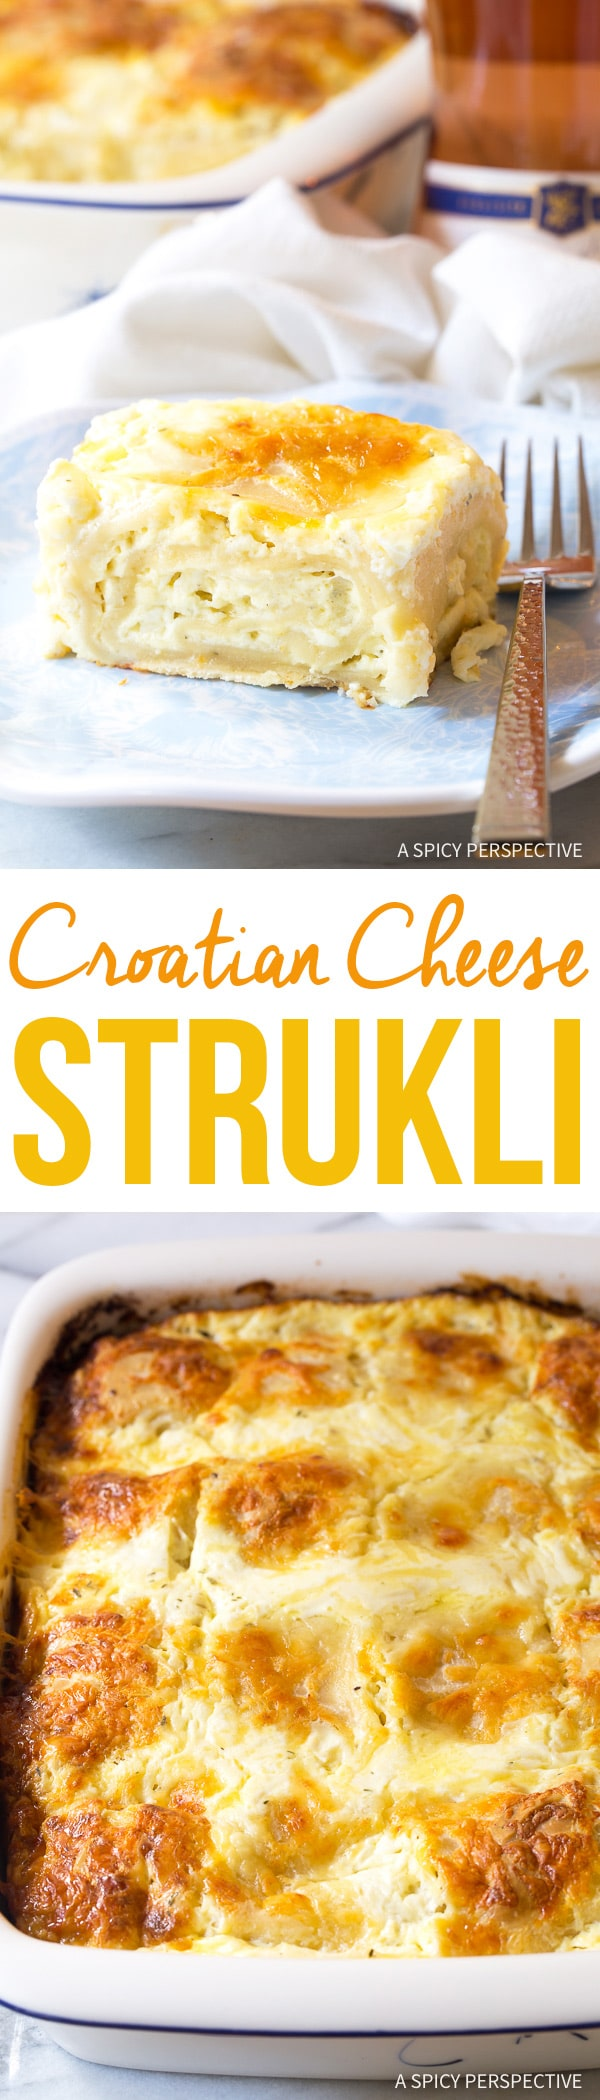 Hearty Croatian Cheese Strukli Recipe